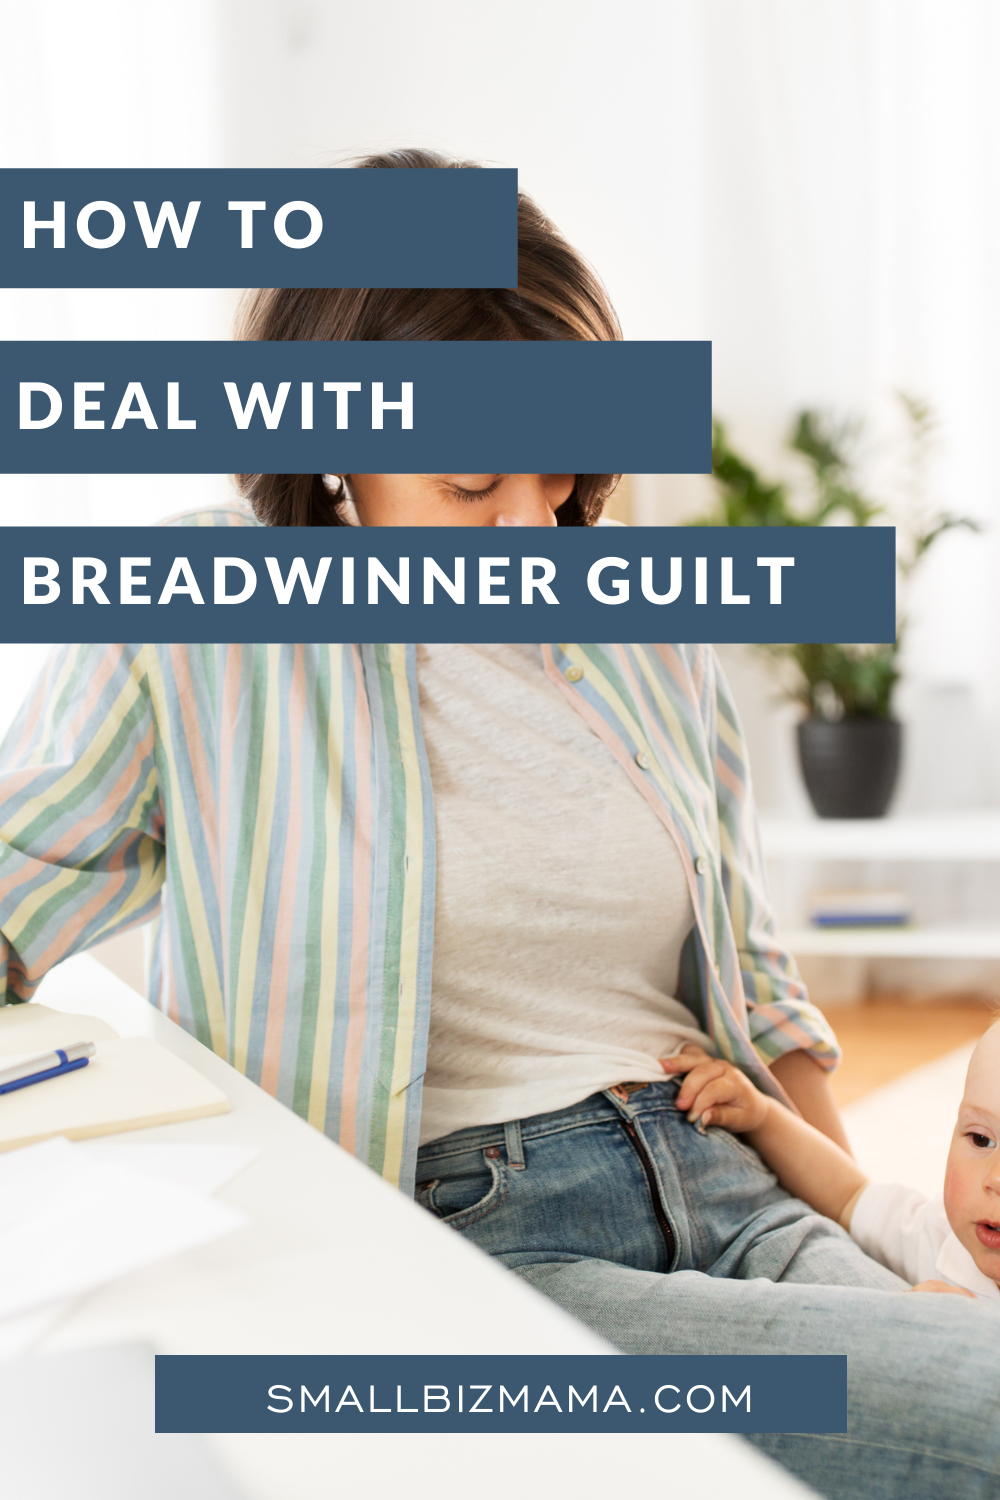 How to deal with breadwinner guilt